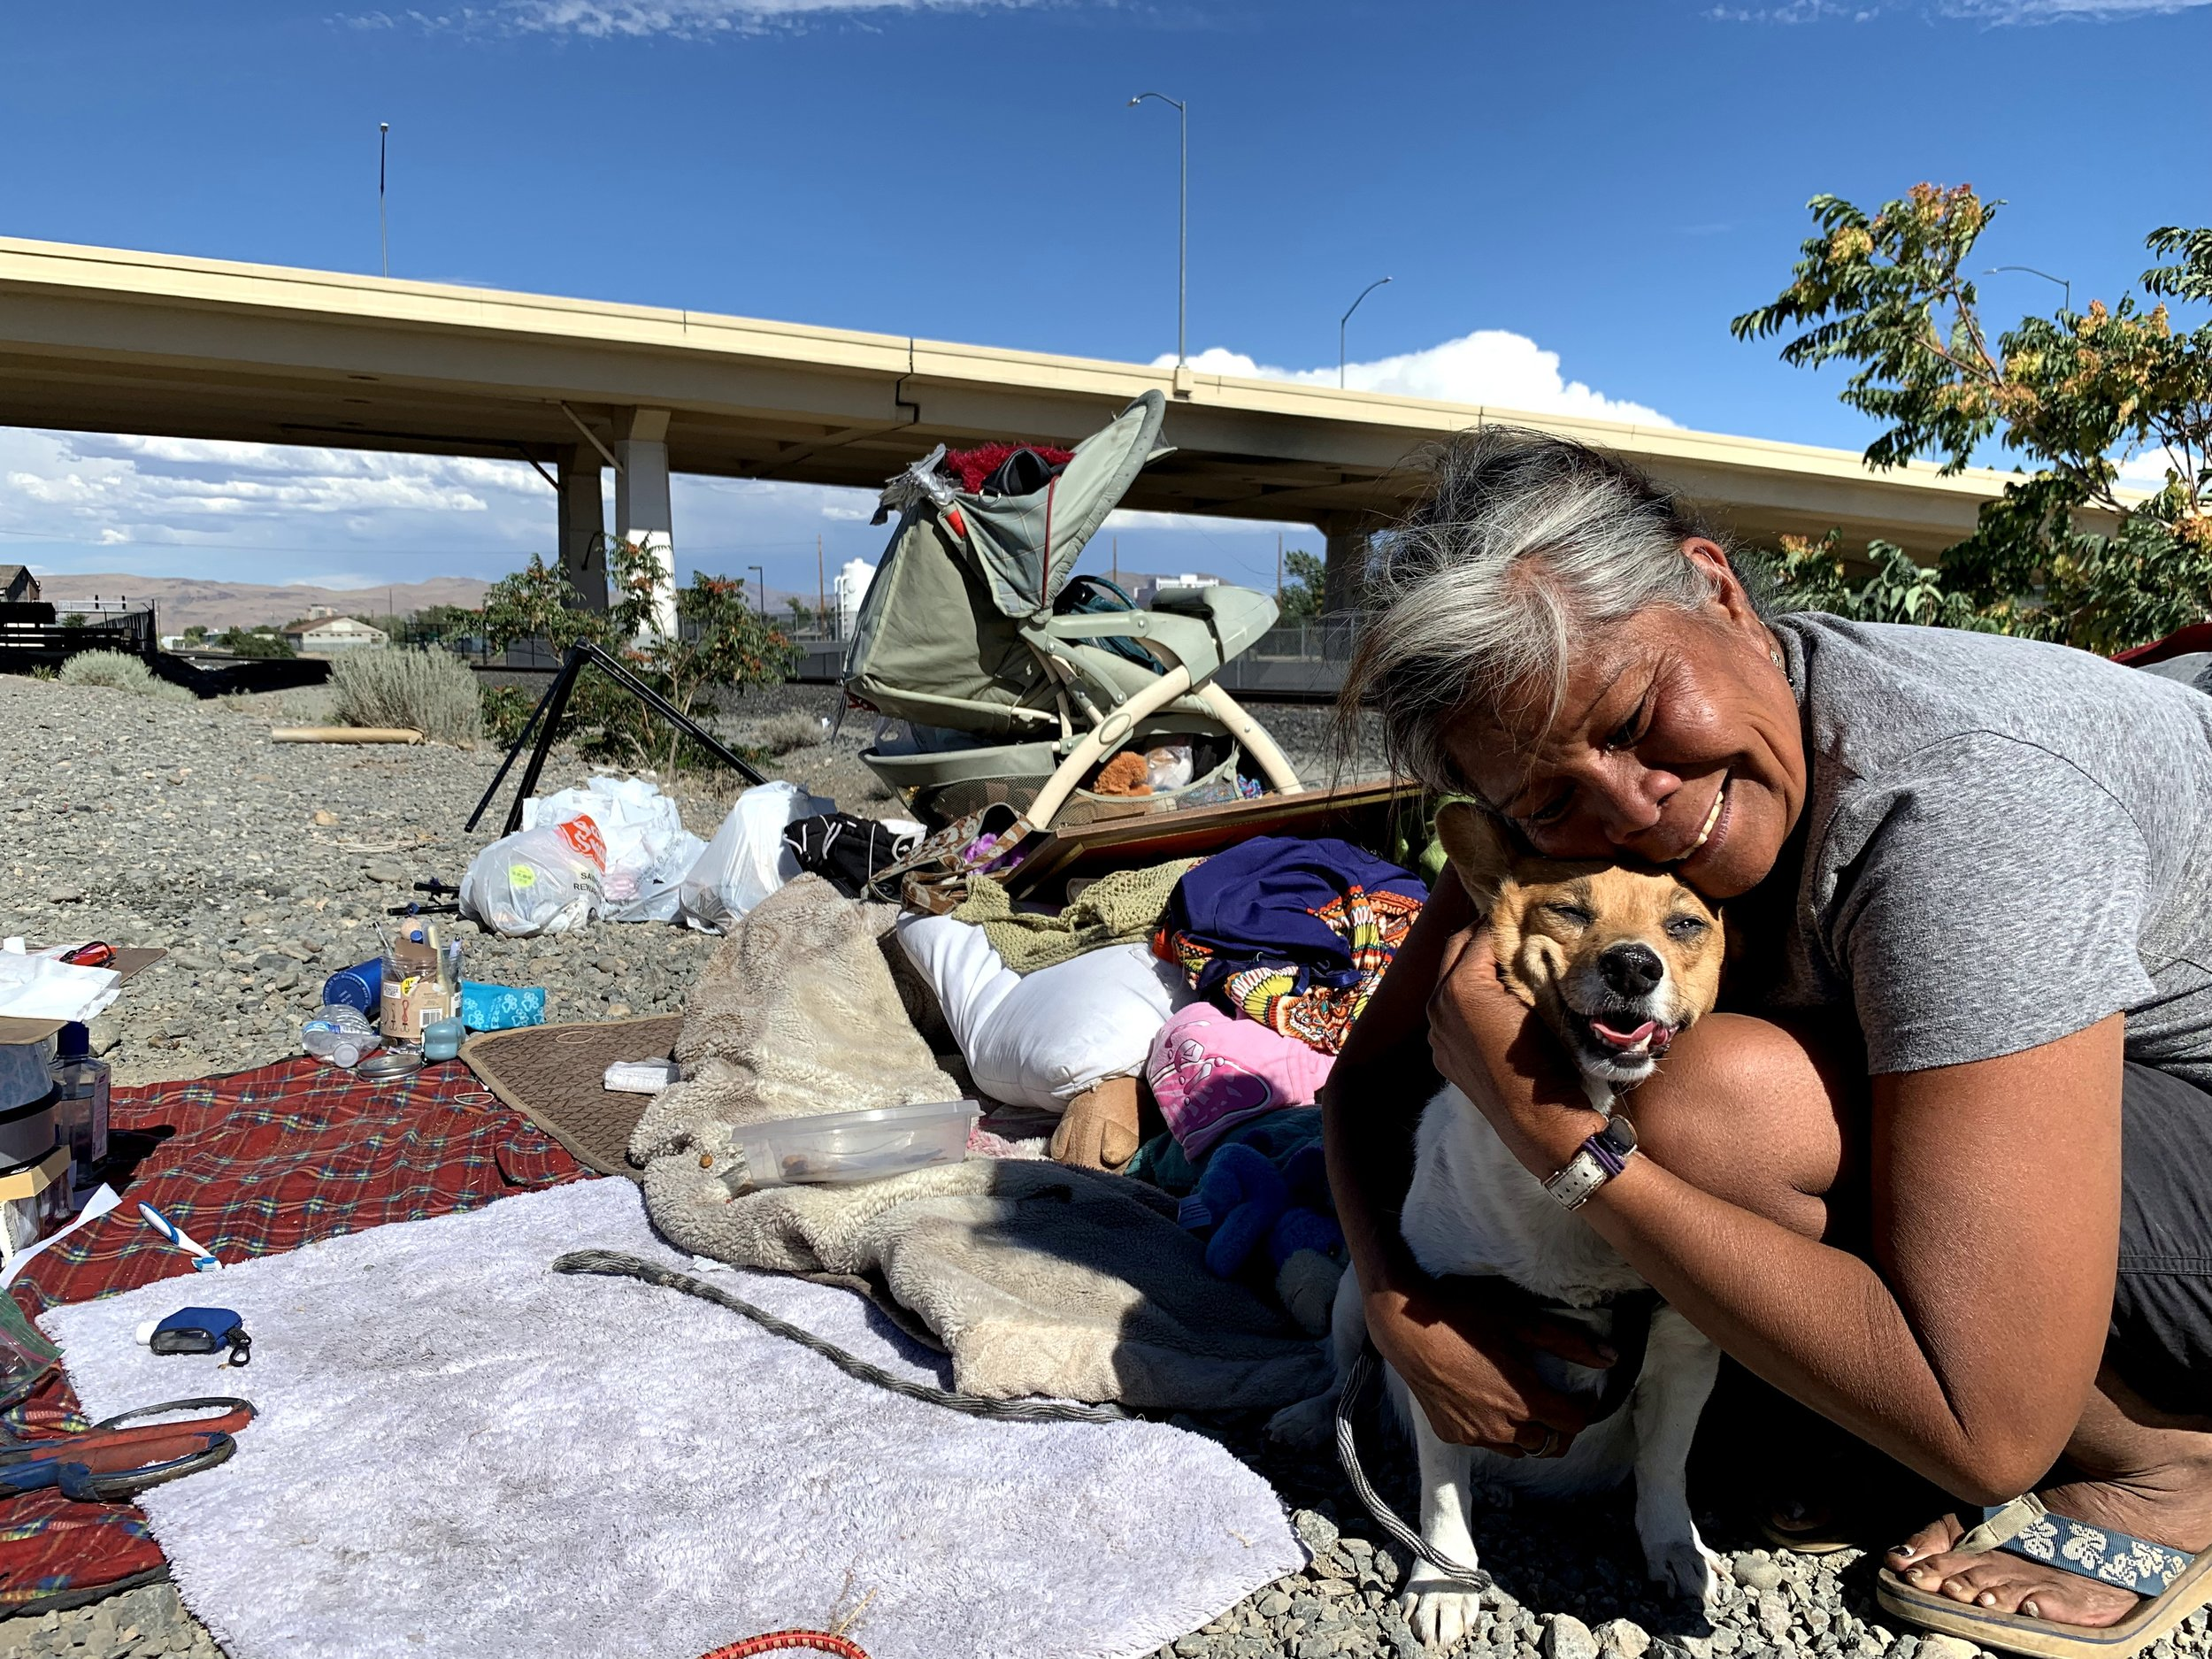 Marilou Gallegos cuddles her dog, Nikita, who she's had for six years. She doesn't go far from her belongings in fear of them getting stolen again or thrown away.